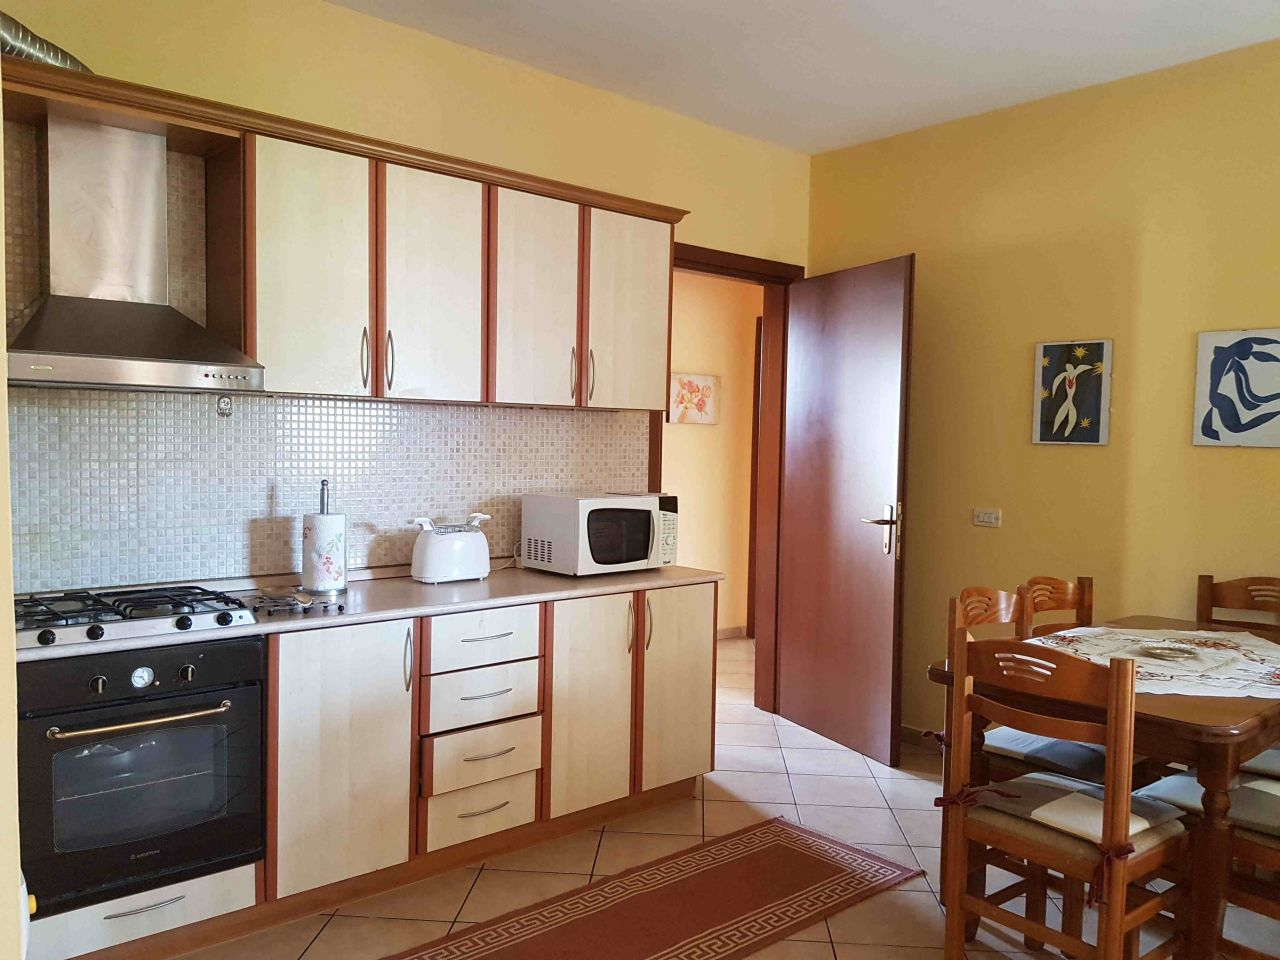 Apartment for Rent  with Three bedrooms and Two Bathrooms, in Tirana